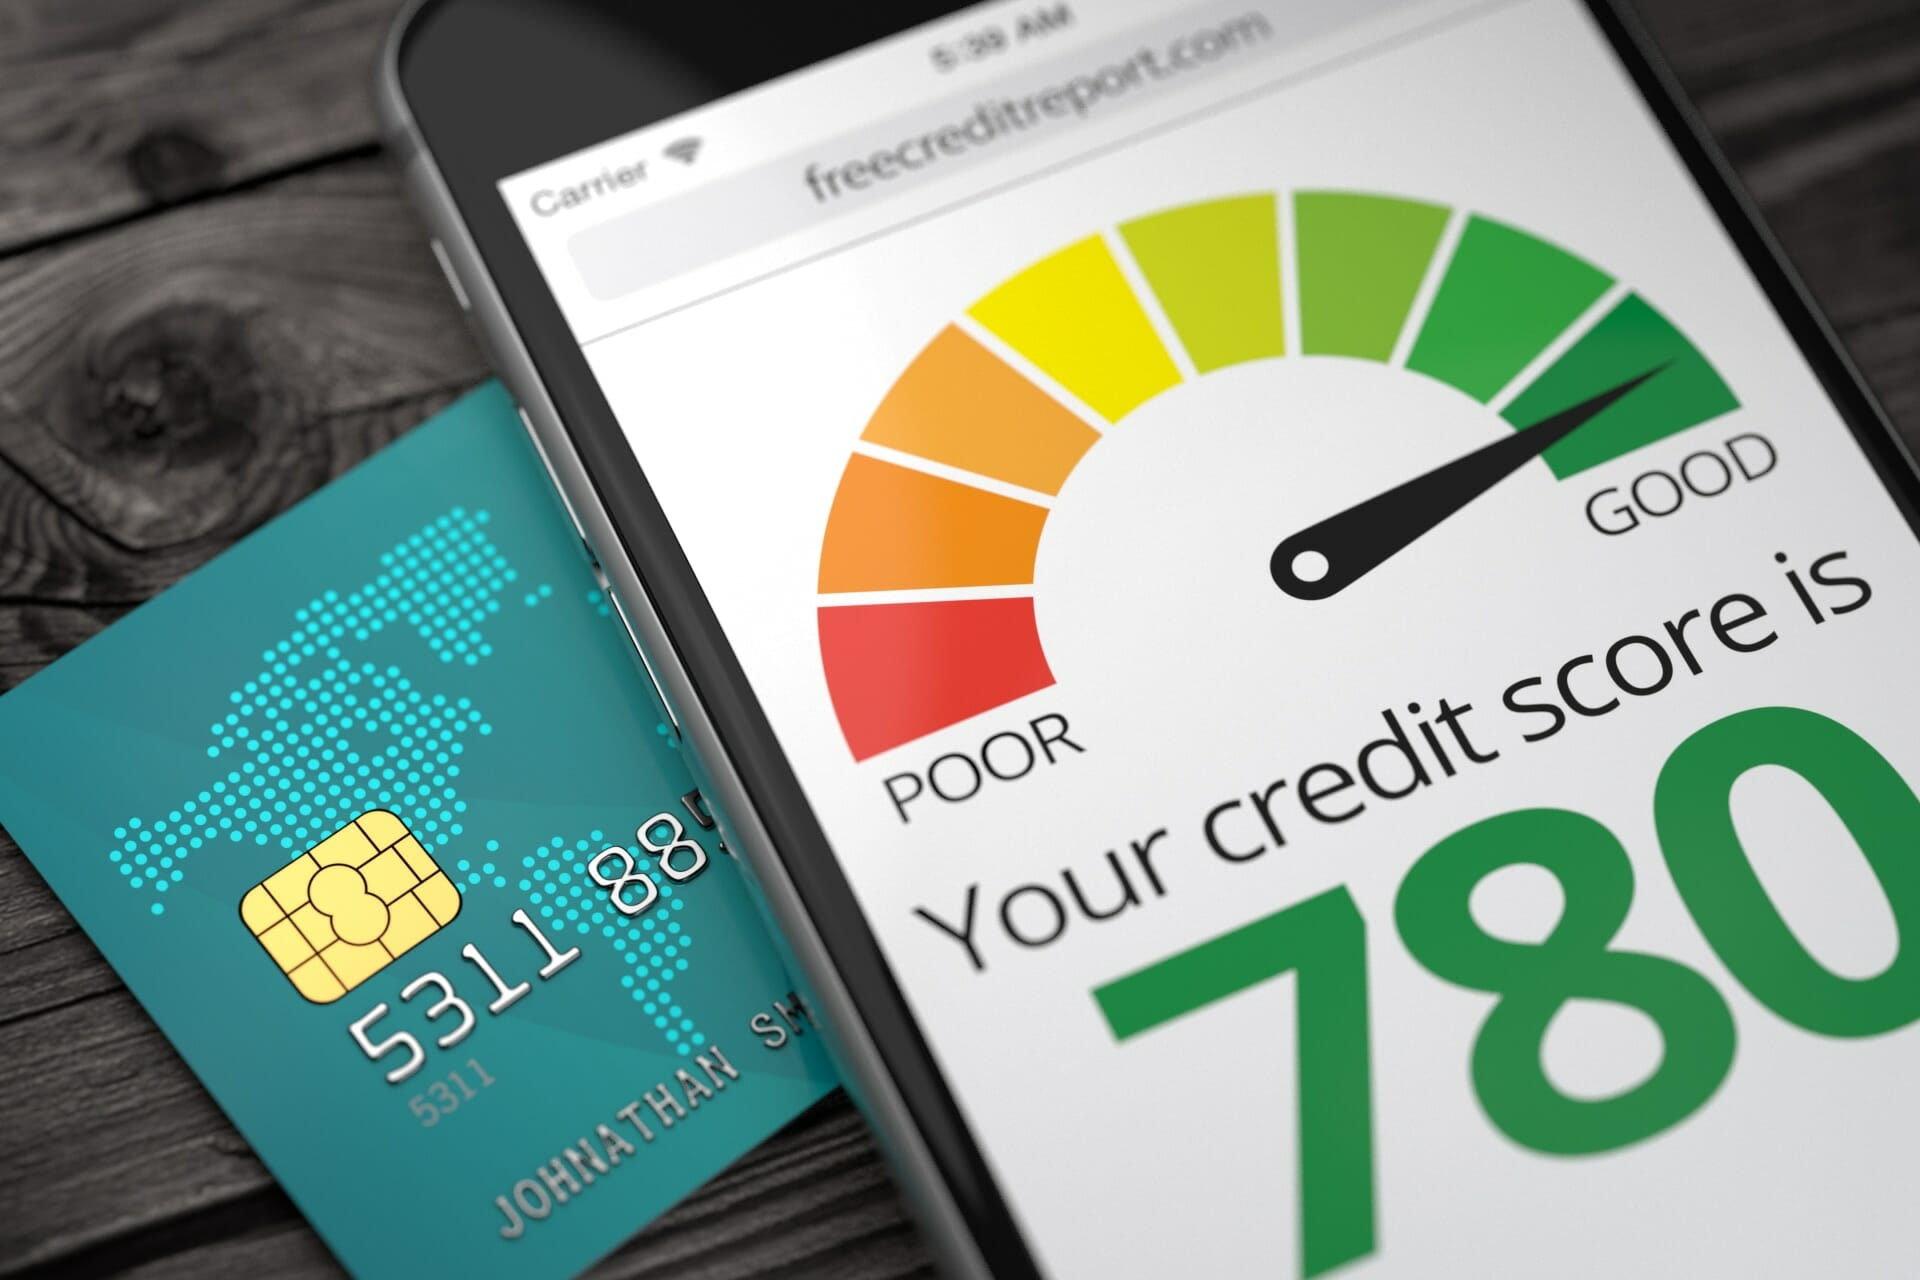 credit score on cell phone screen